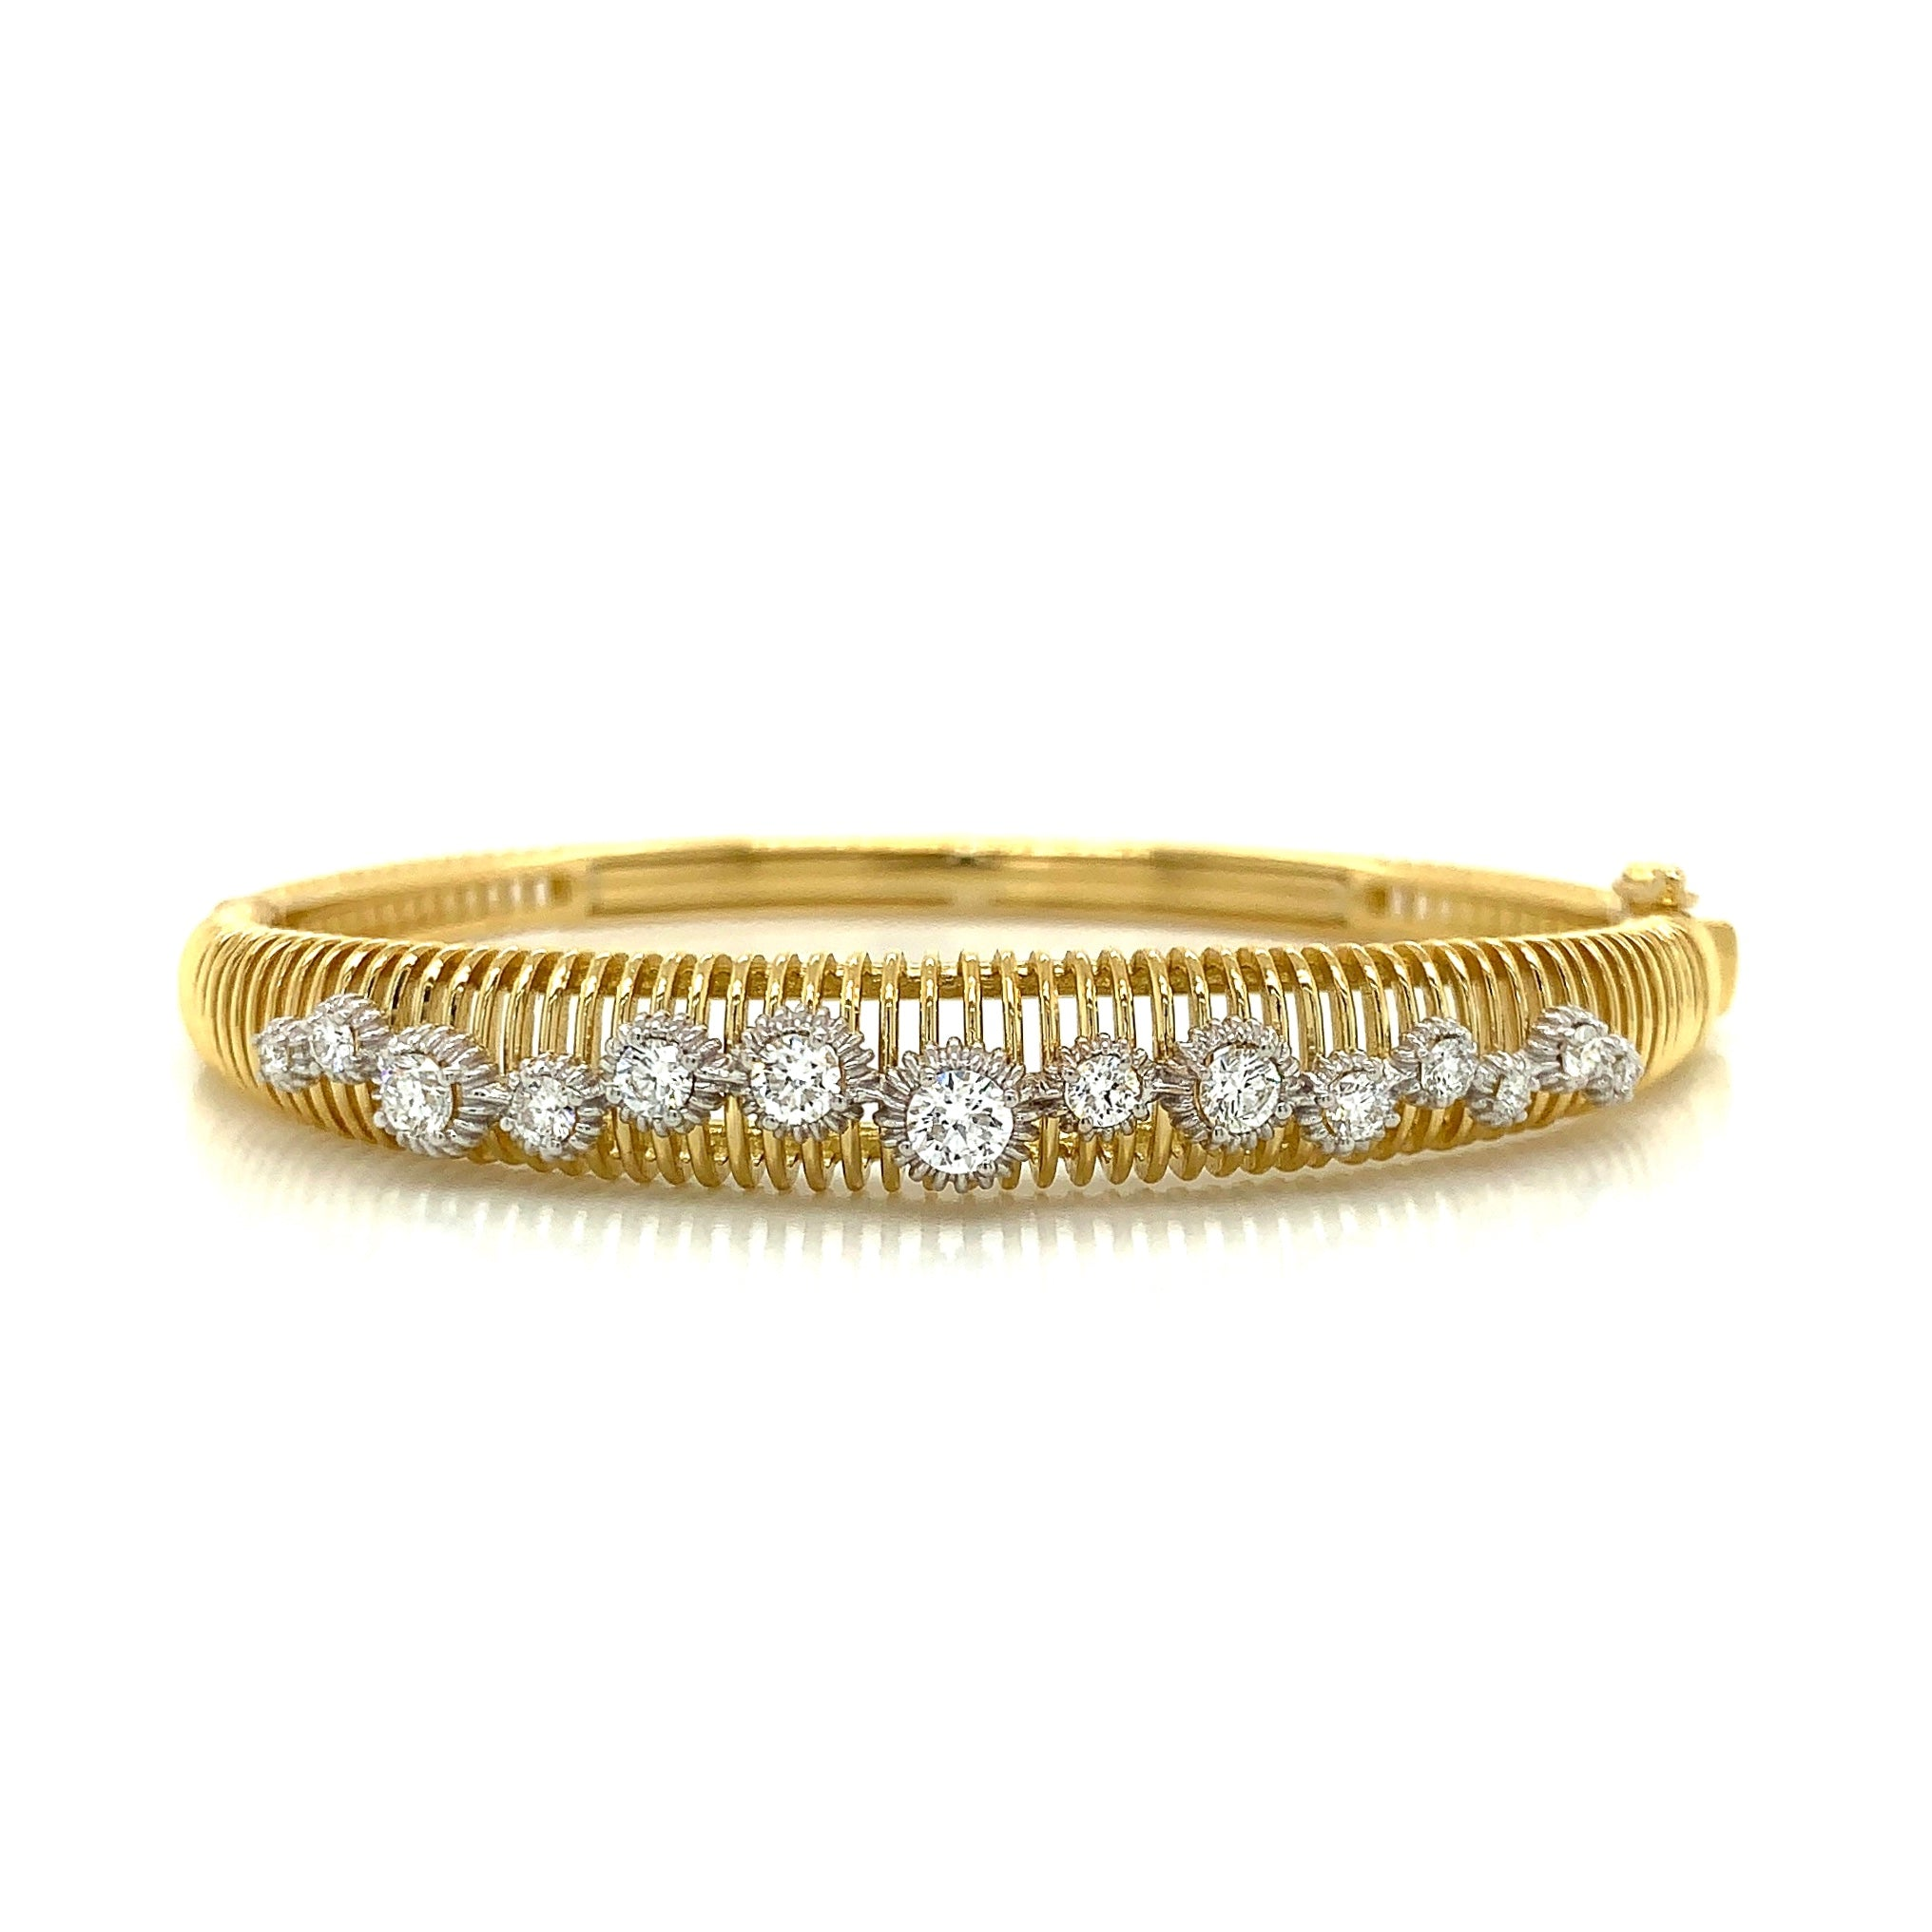 Gold Bangle with Diamond Accent